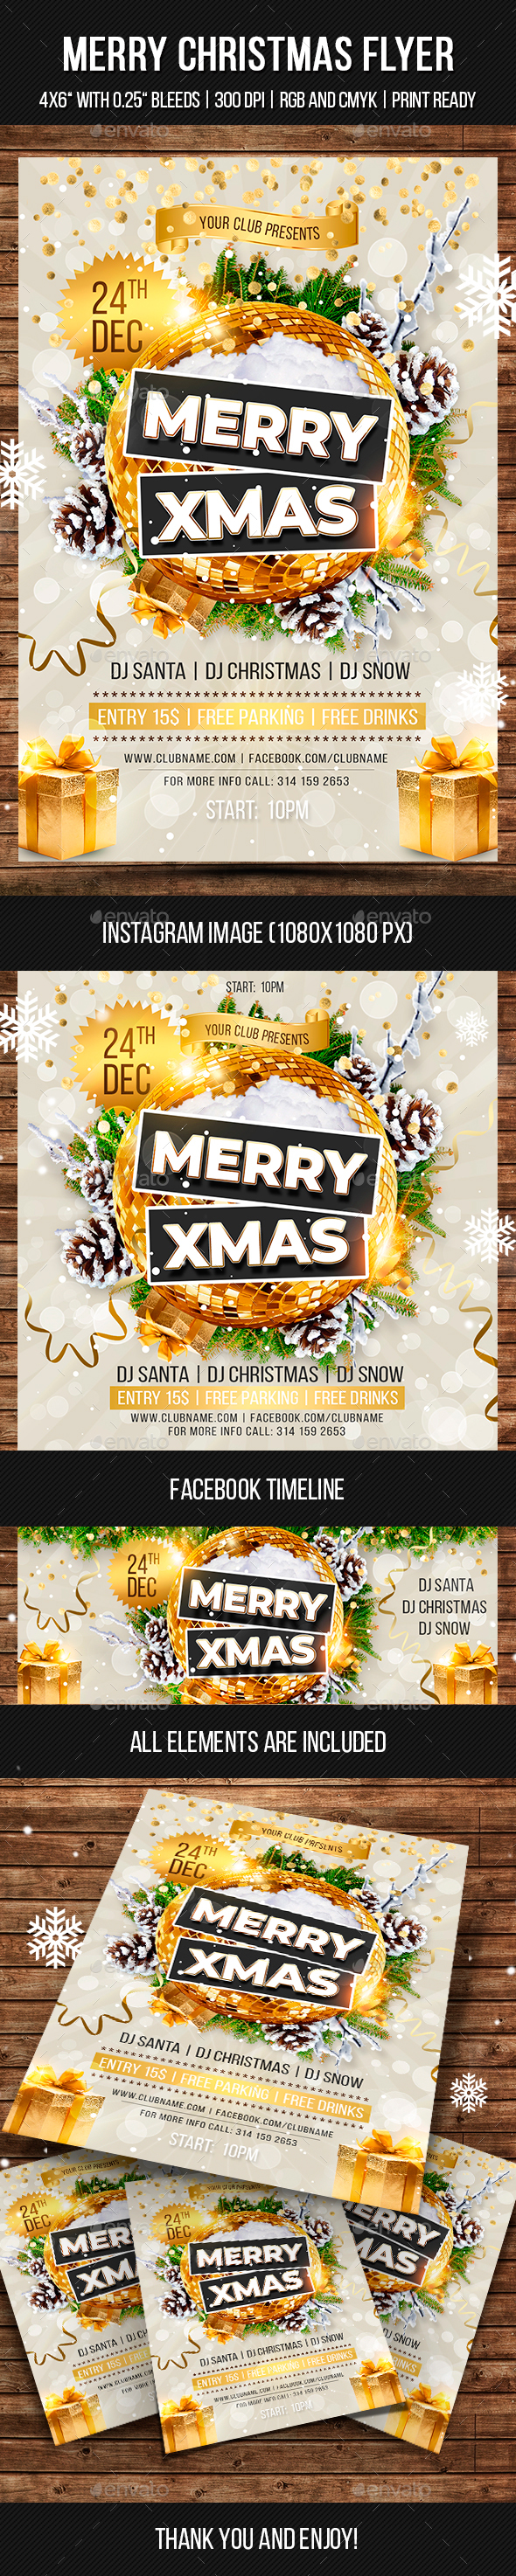 GraphicRiver Merry Christmas Flyer 21003023